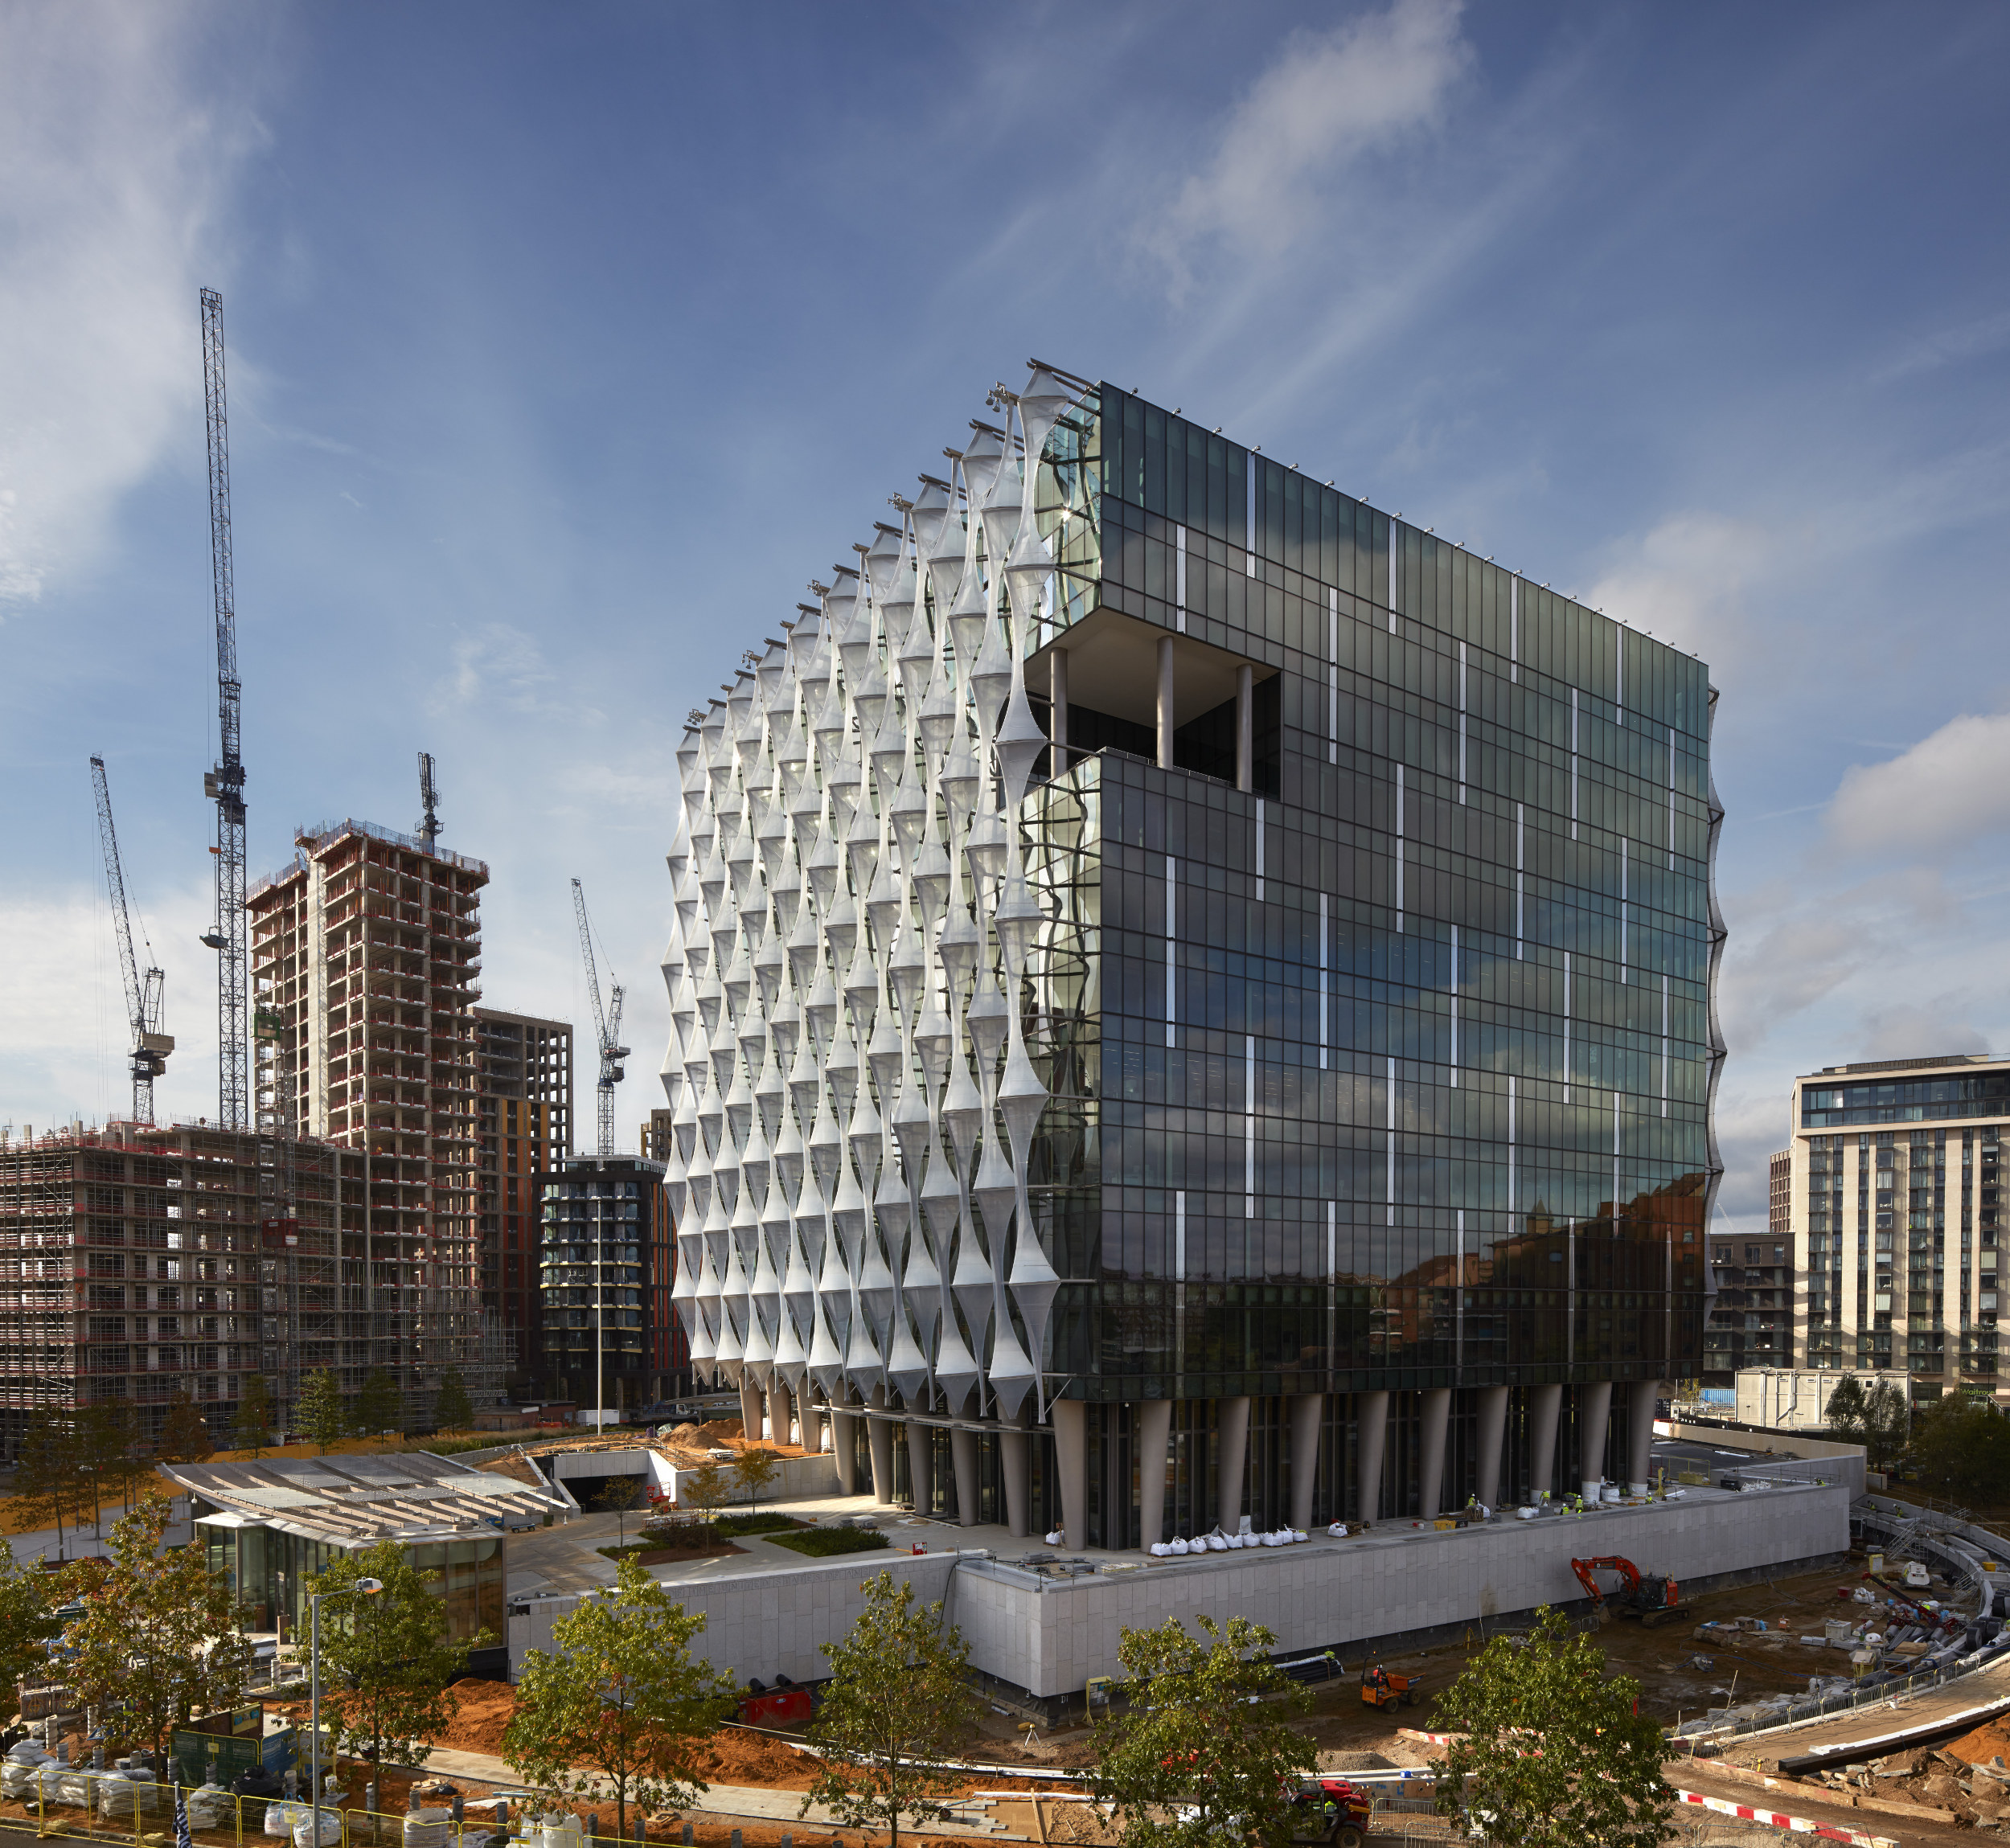 The futuristic building has been designed to be energy efficient as well as secure.